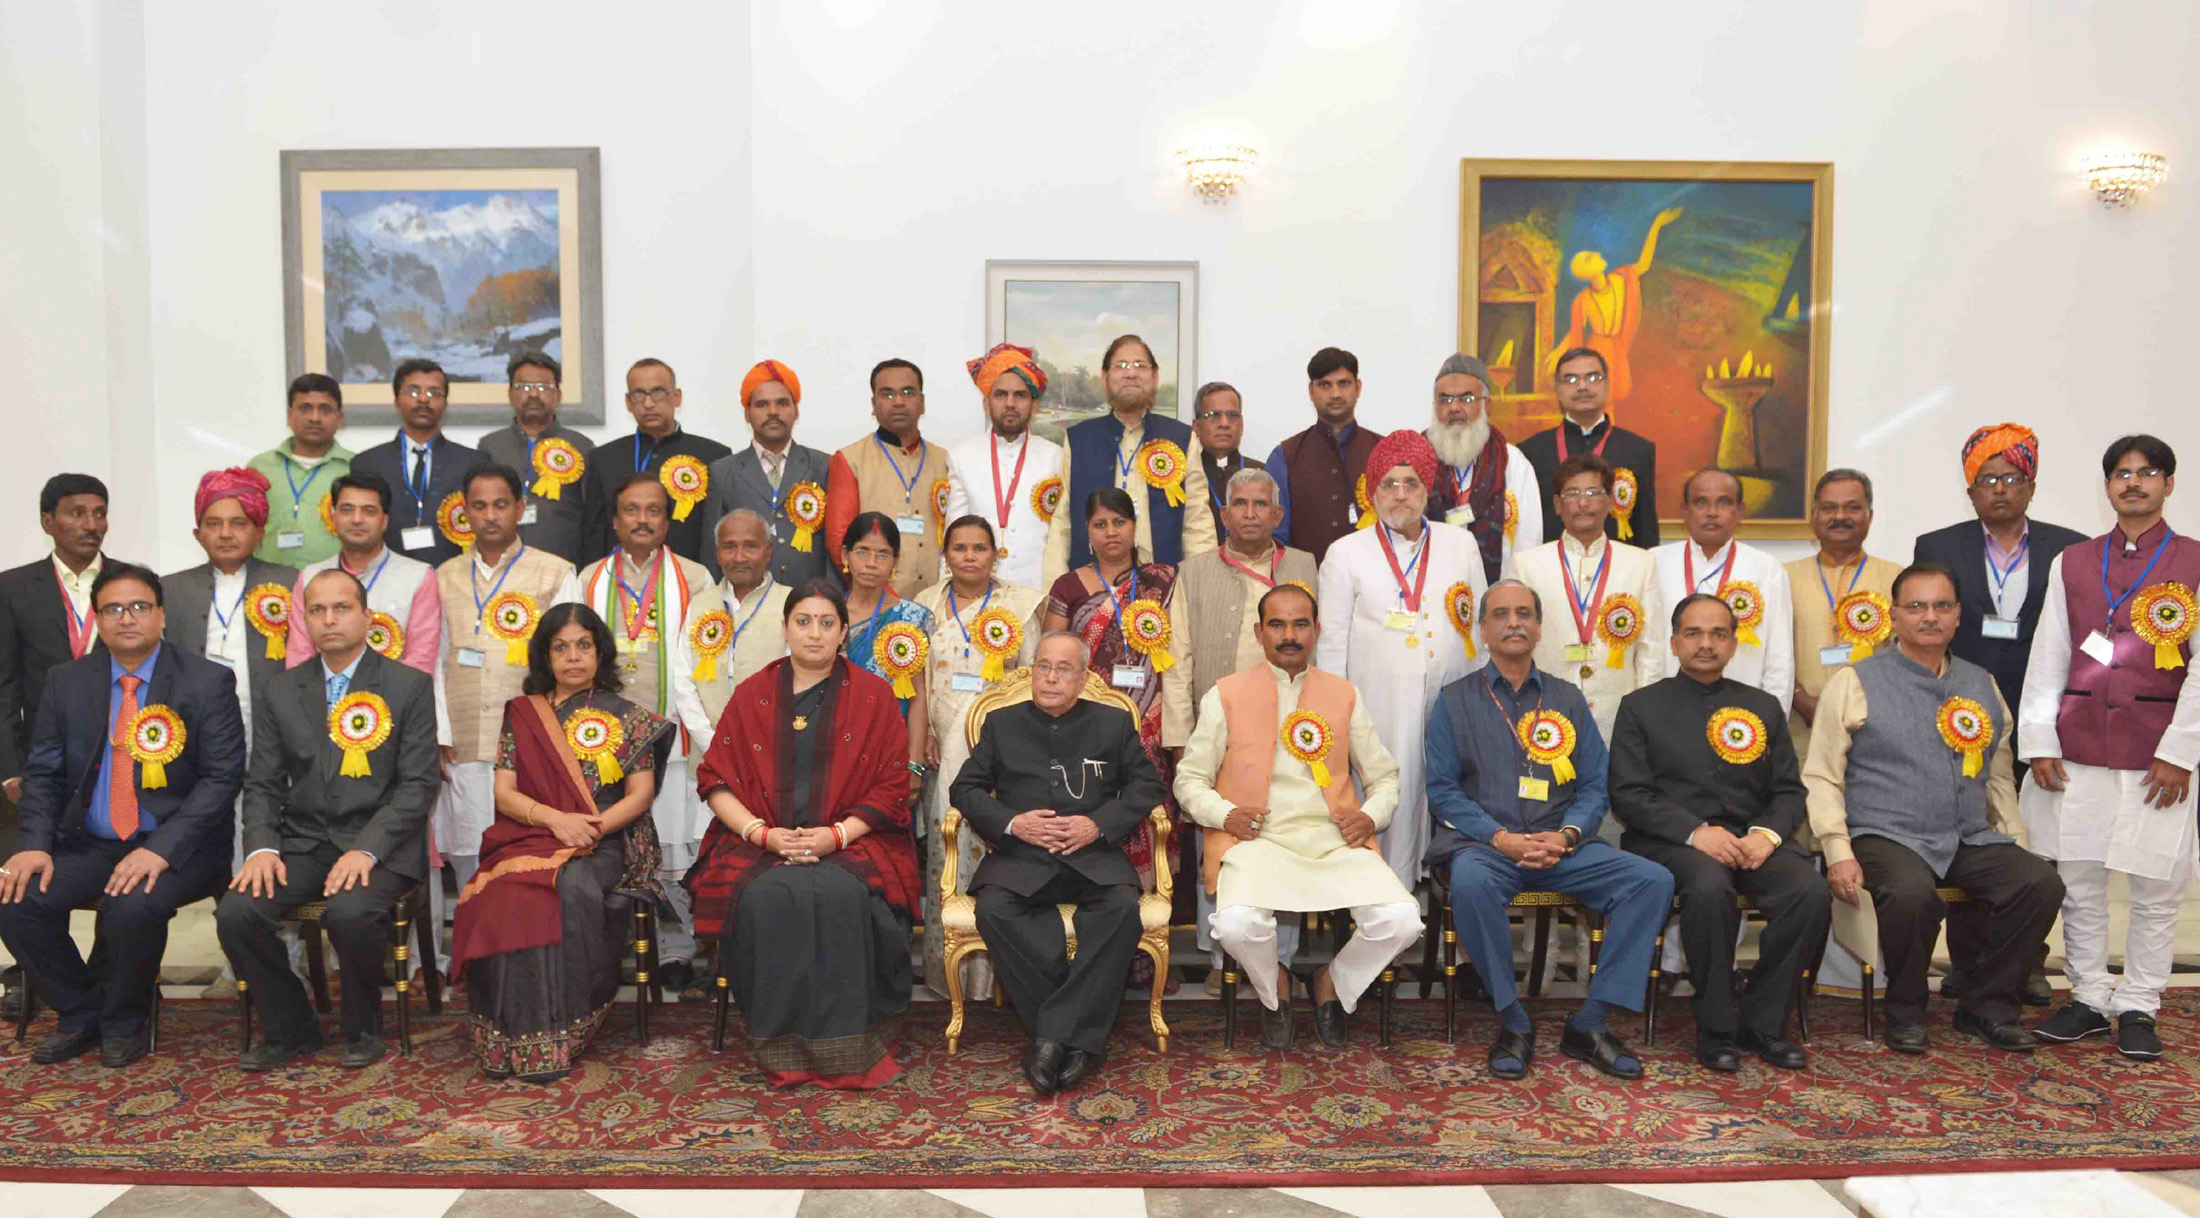 Hon Ble President Of India Shri Pranab Mukherjee Conferred The